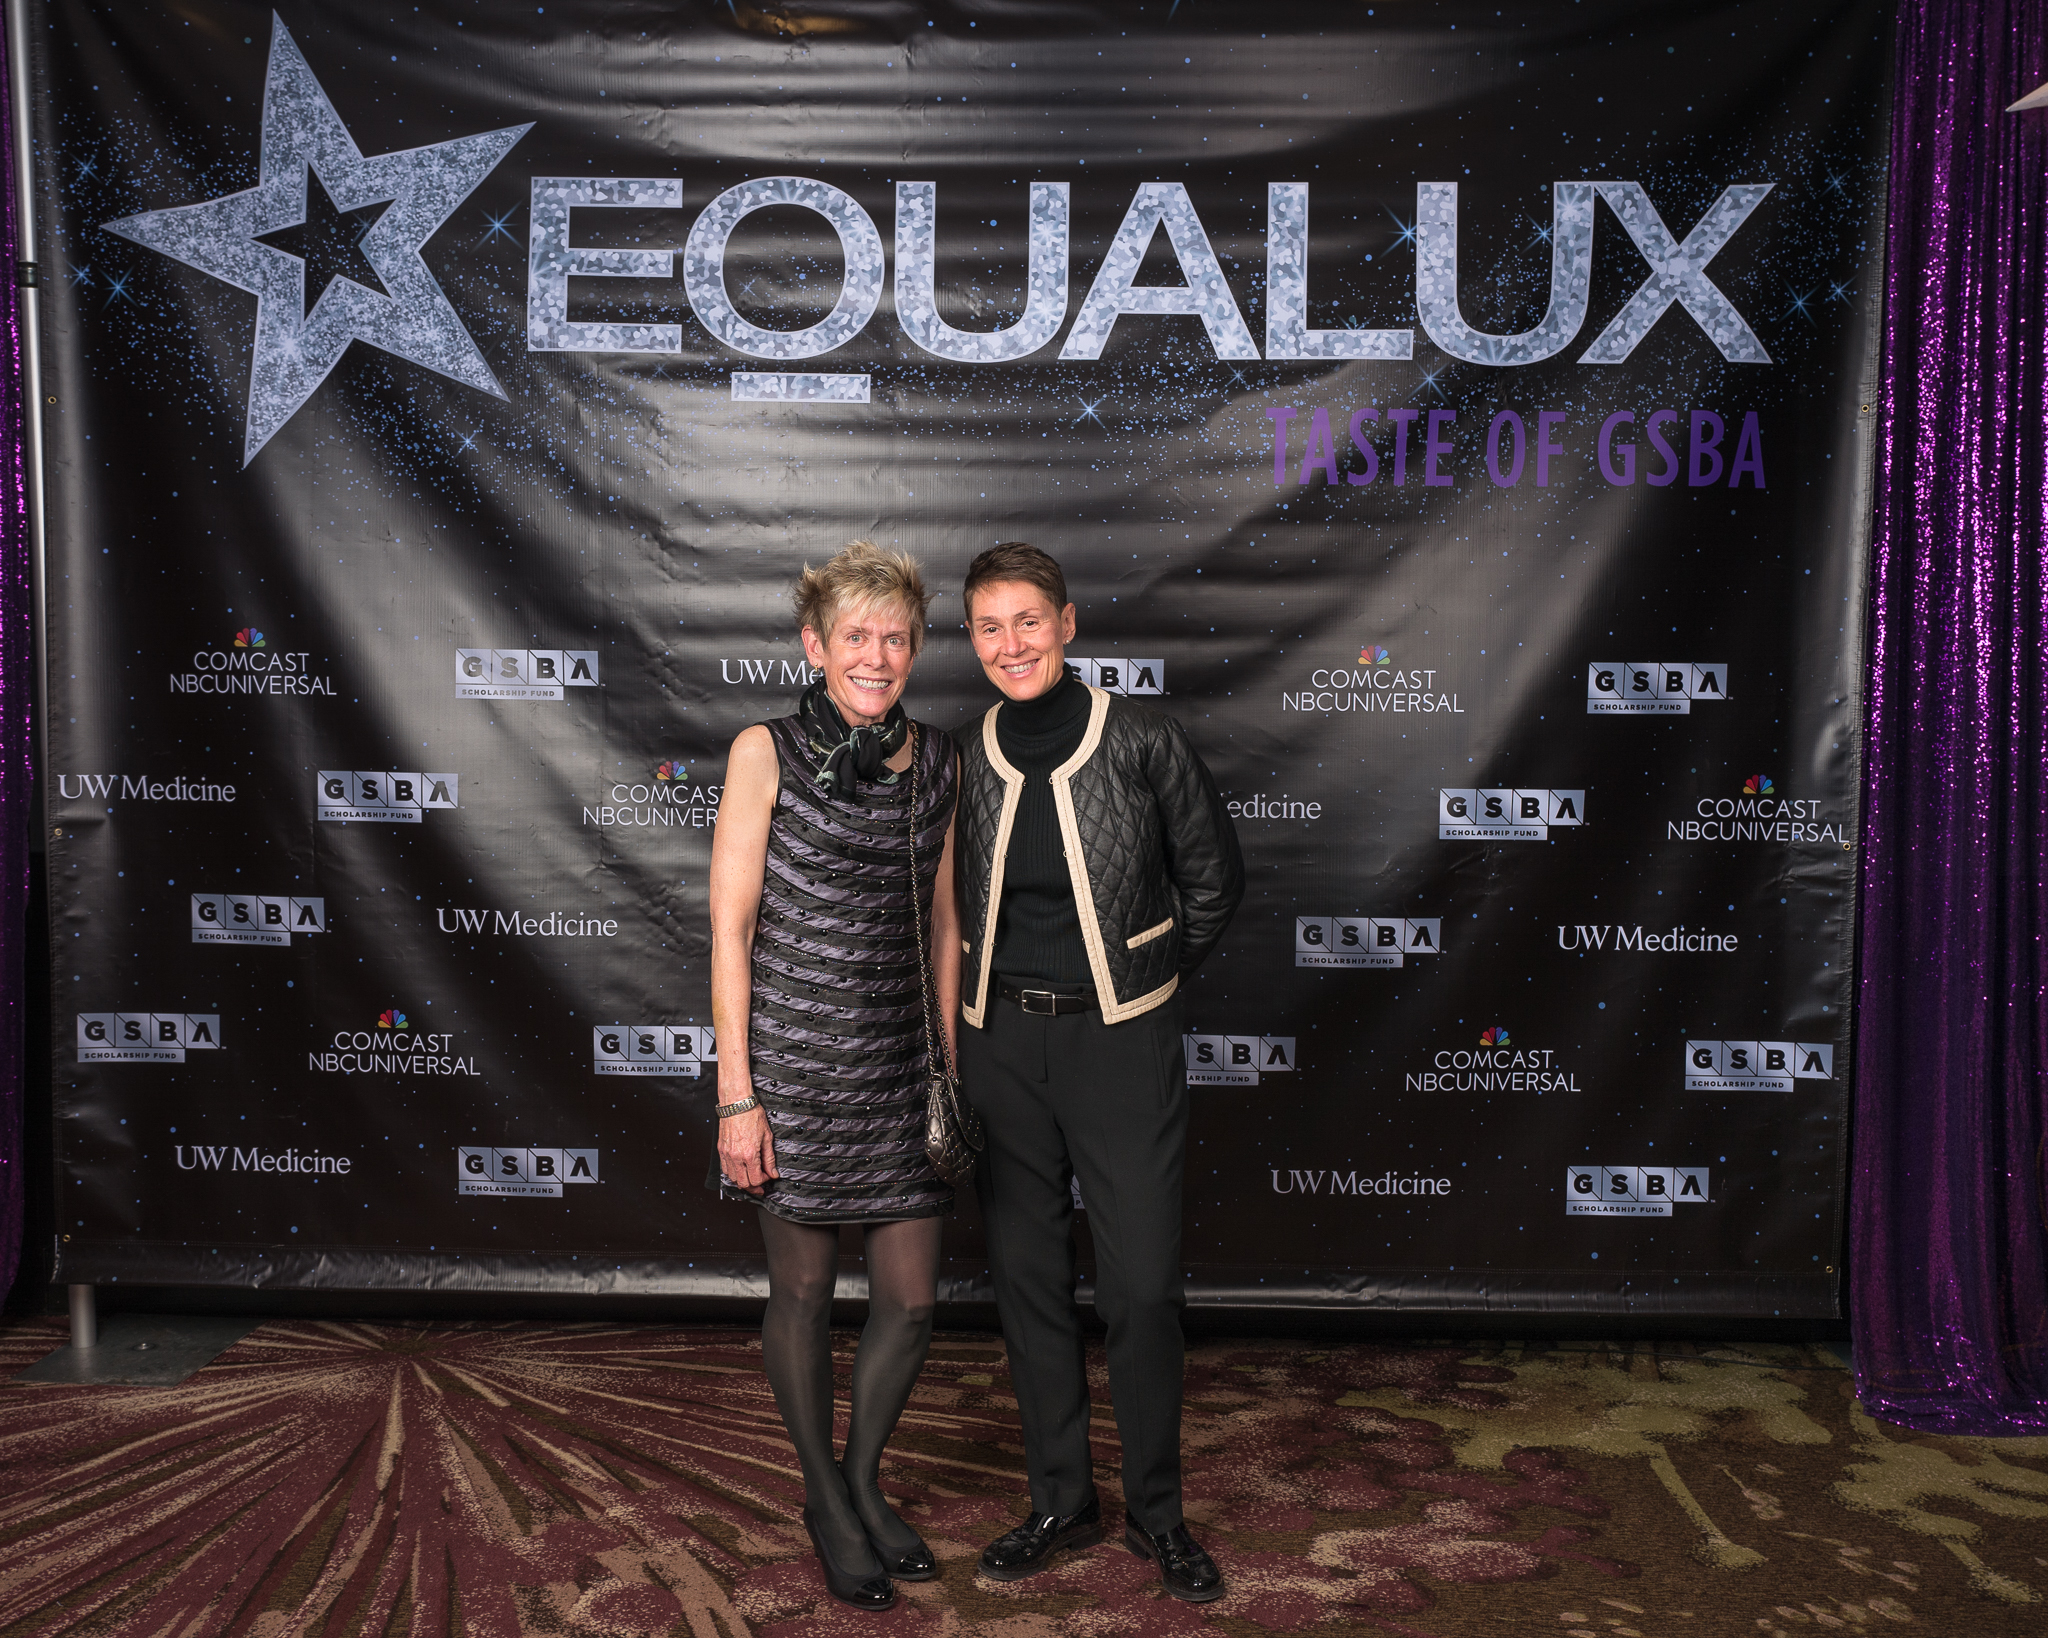 111718_GSBA EQUALUX at The Westin Seattle (Credit- Nate Gowdy)-150.jpg